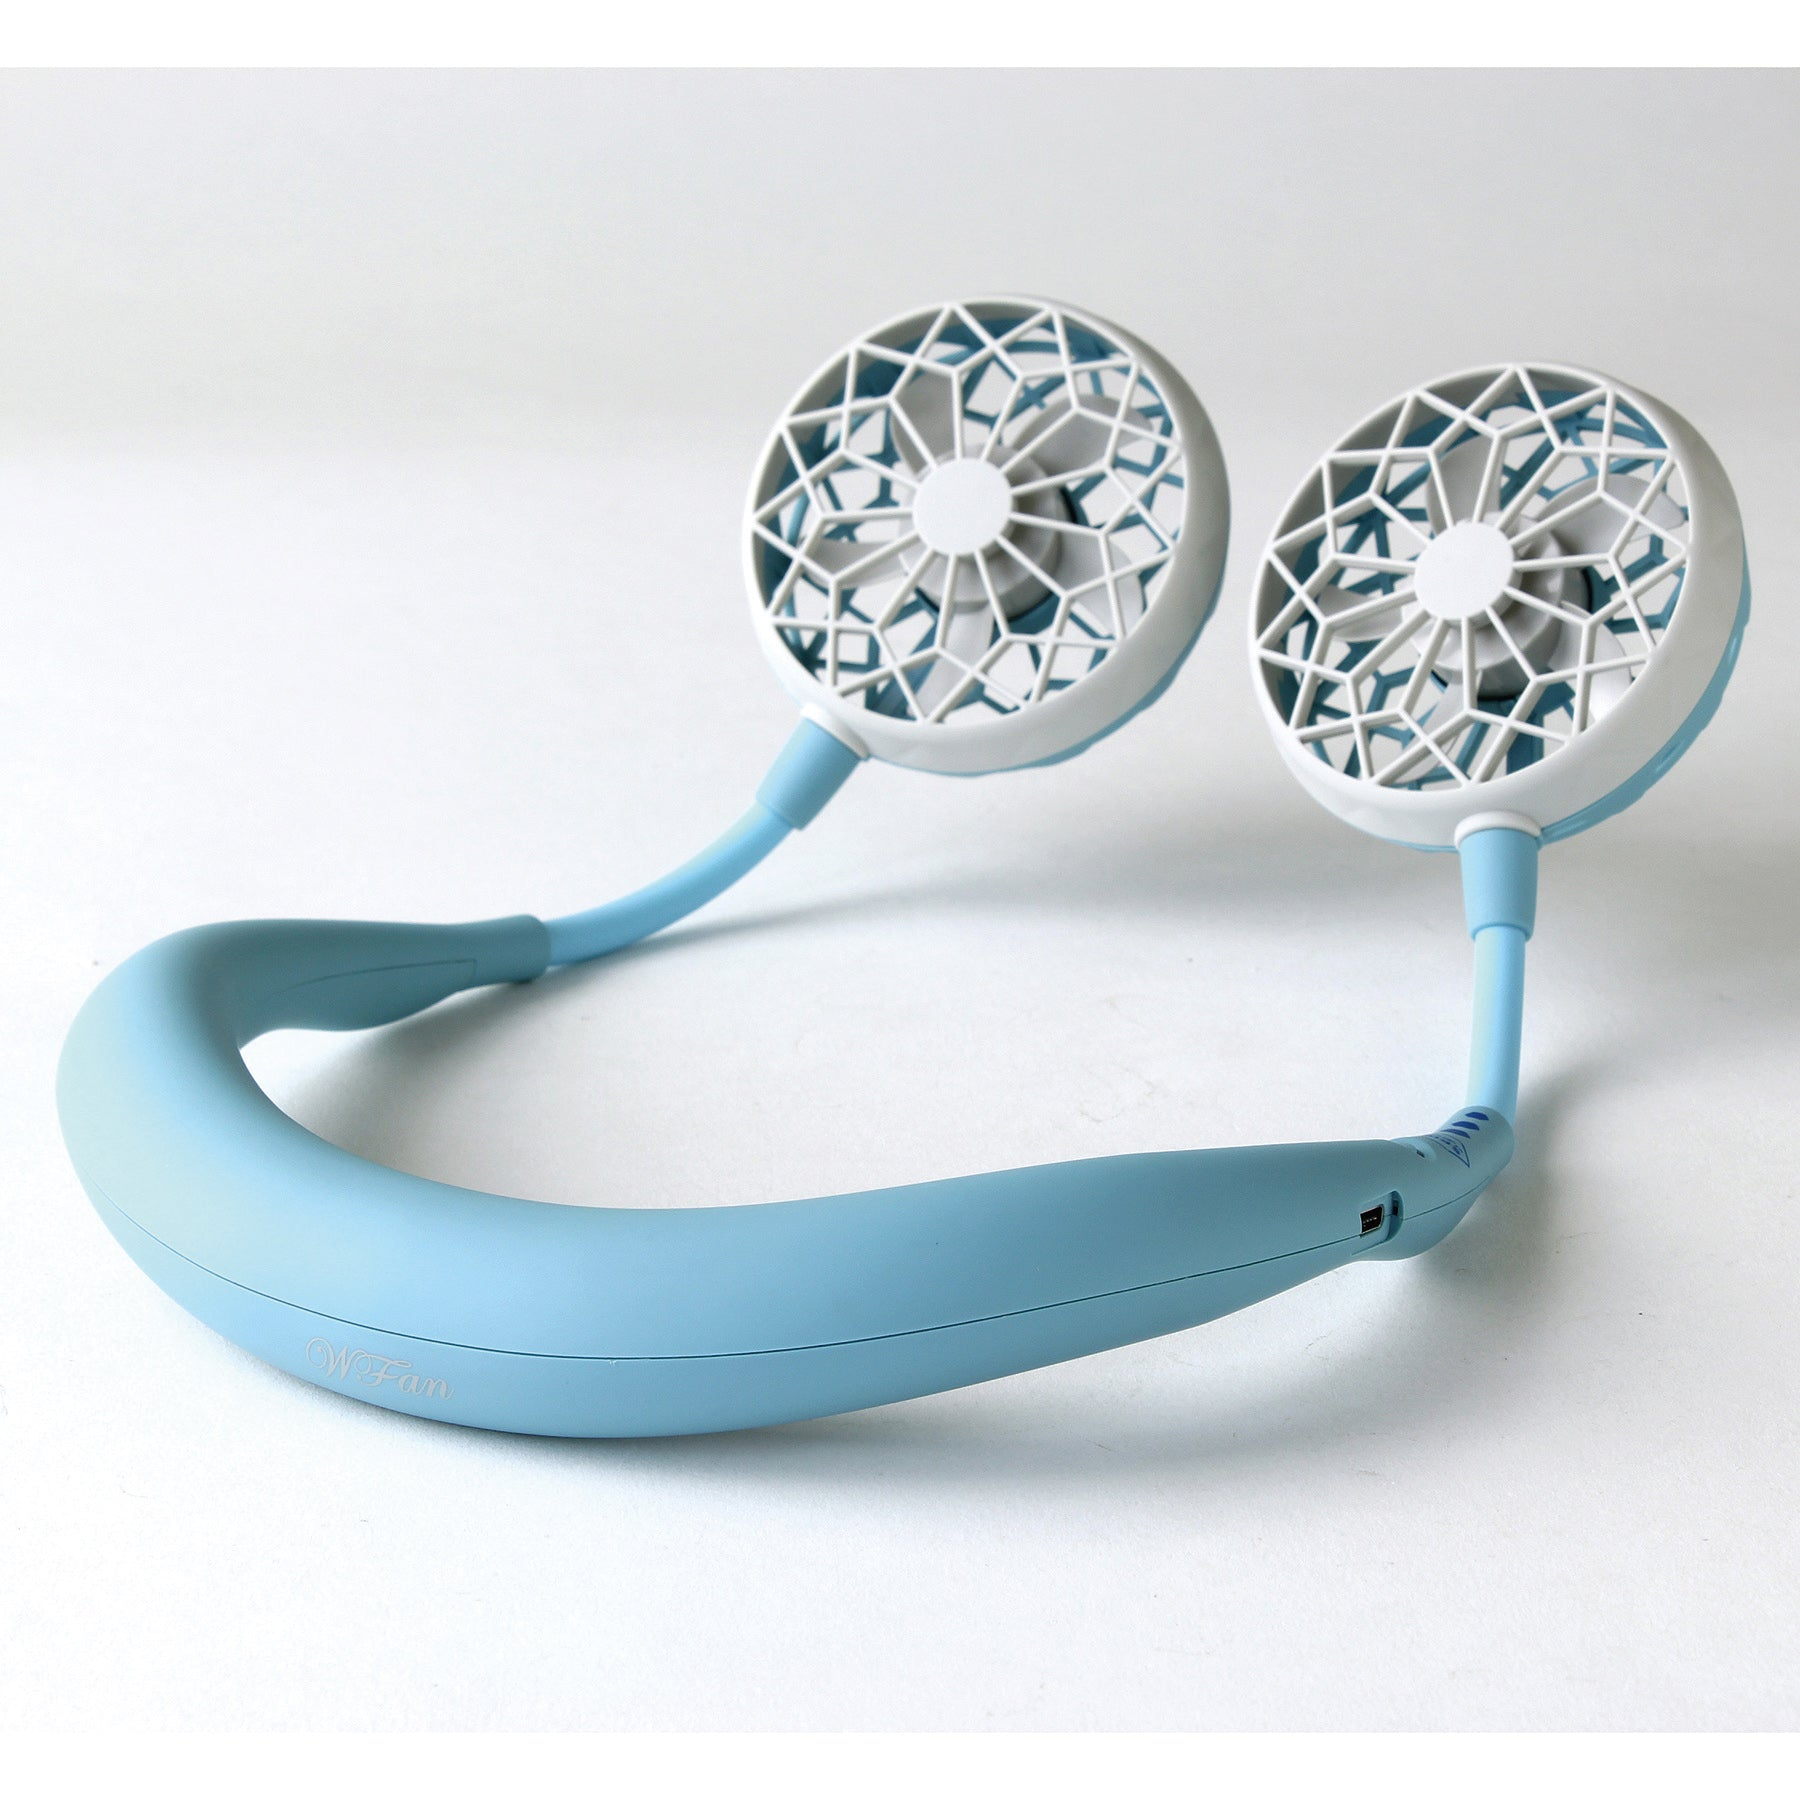 W Fan Wearable Hands free fan 2.0 Edition Aqua Blue